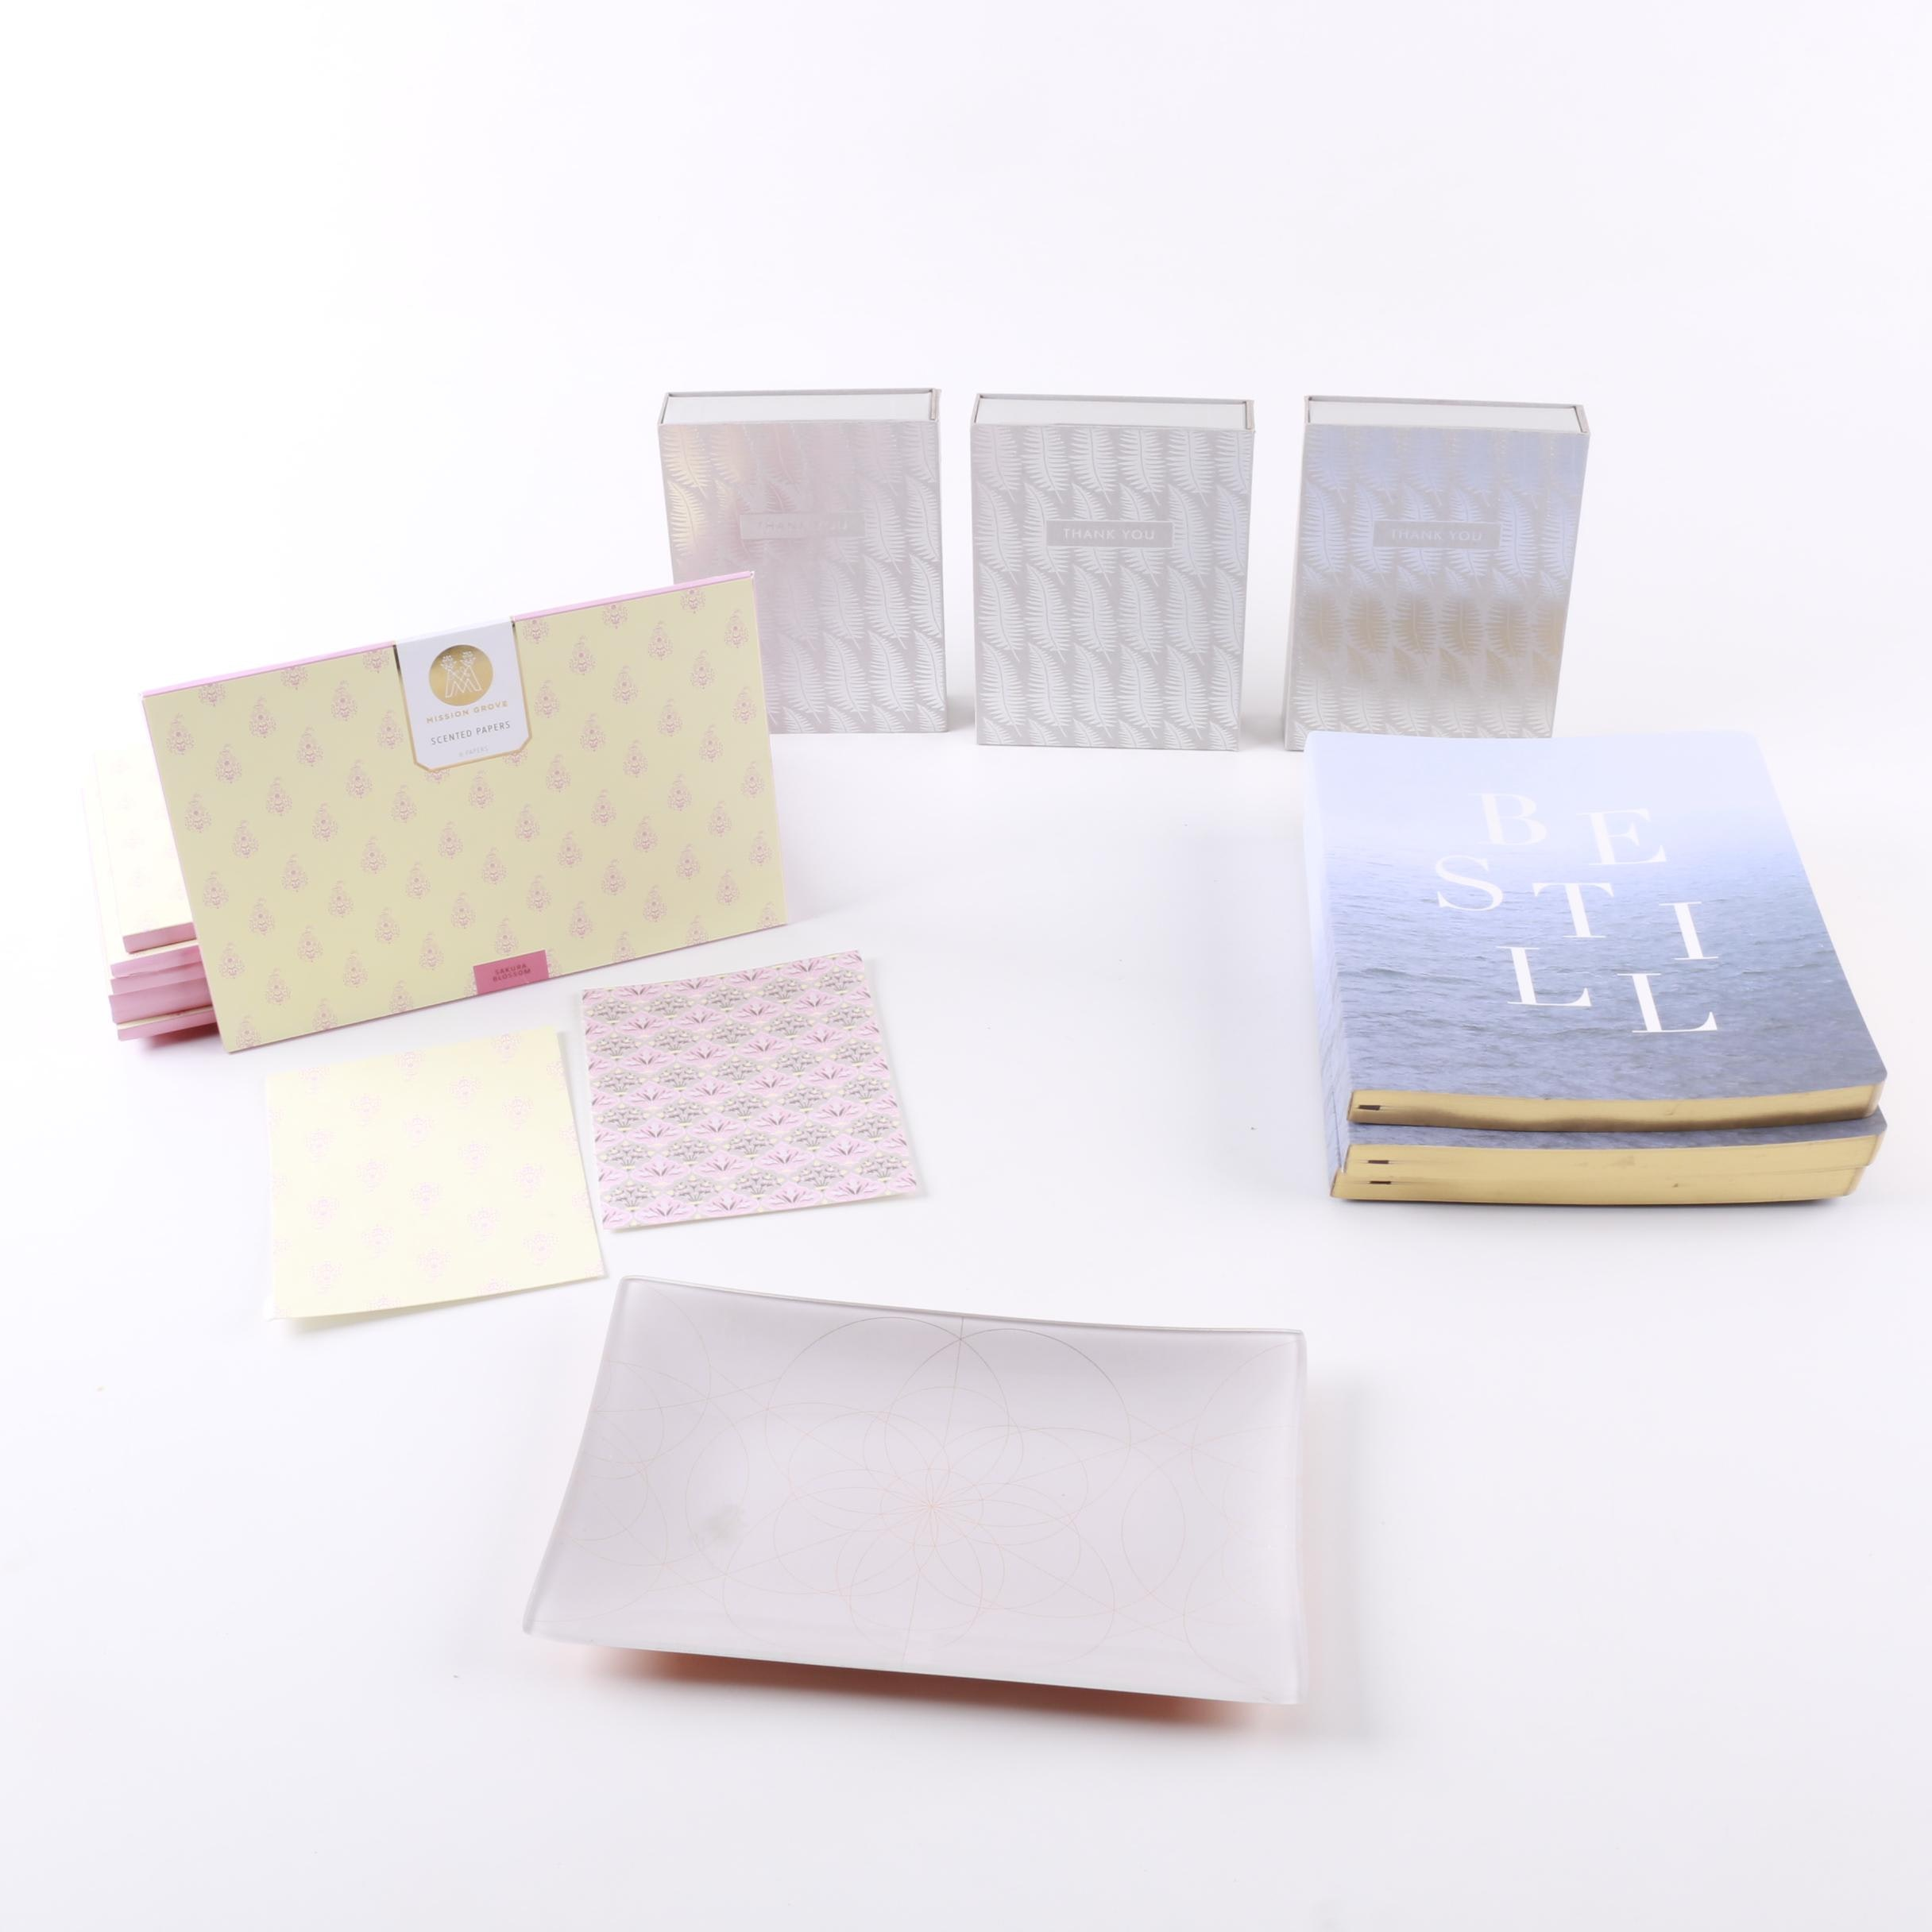 Stationery, Journals, and Note Cards